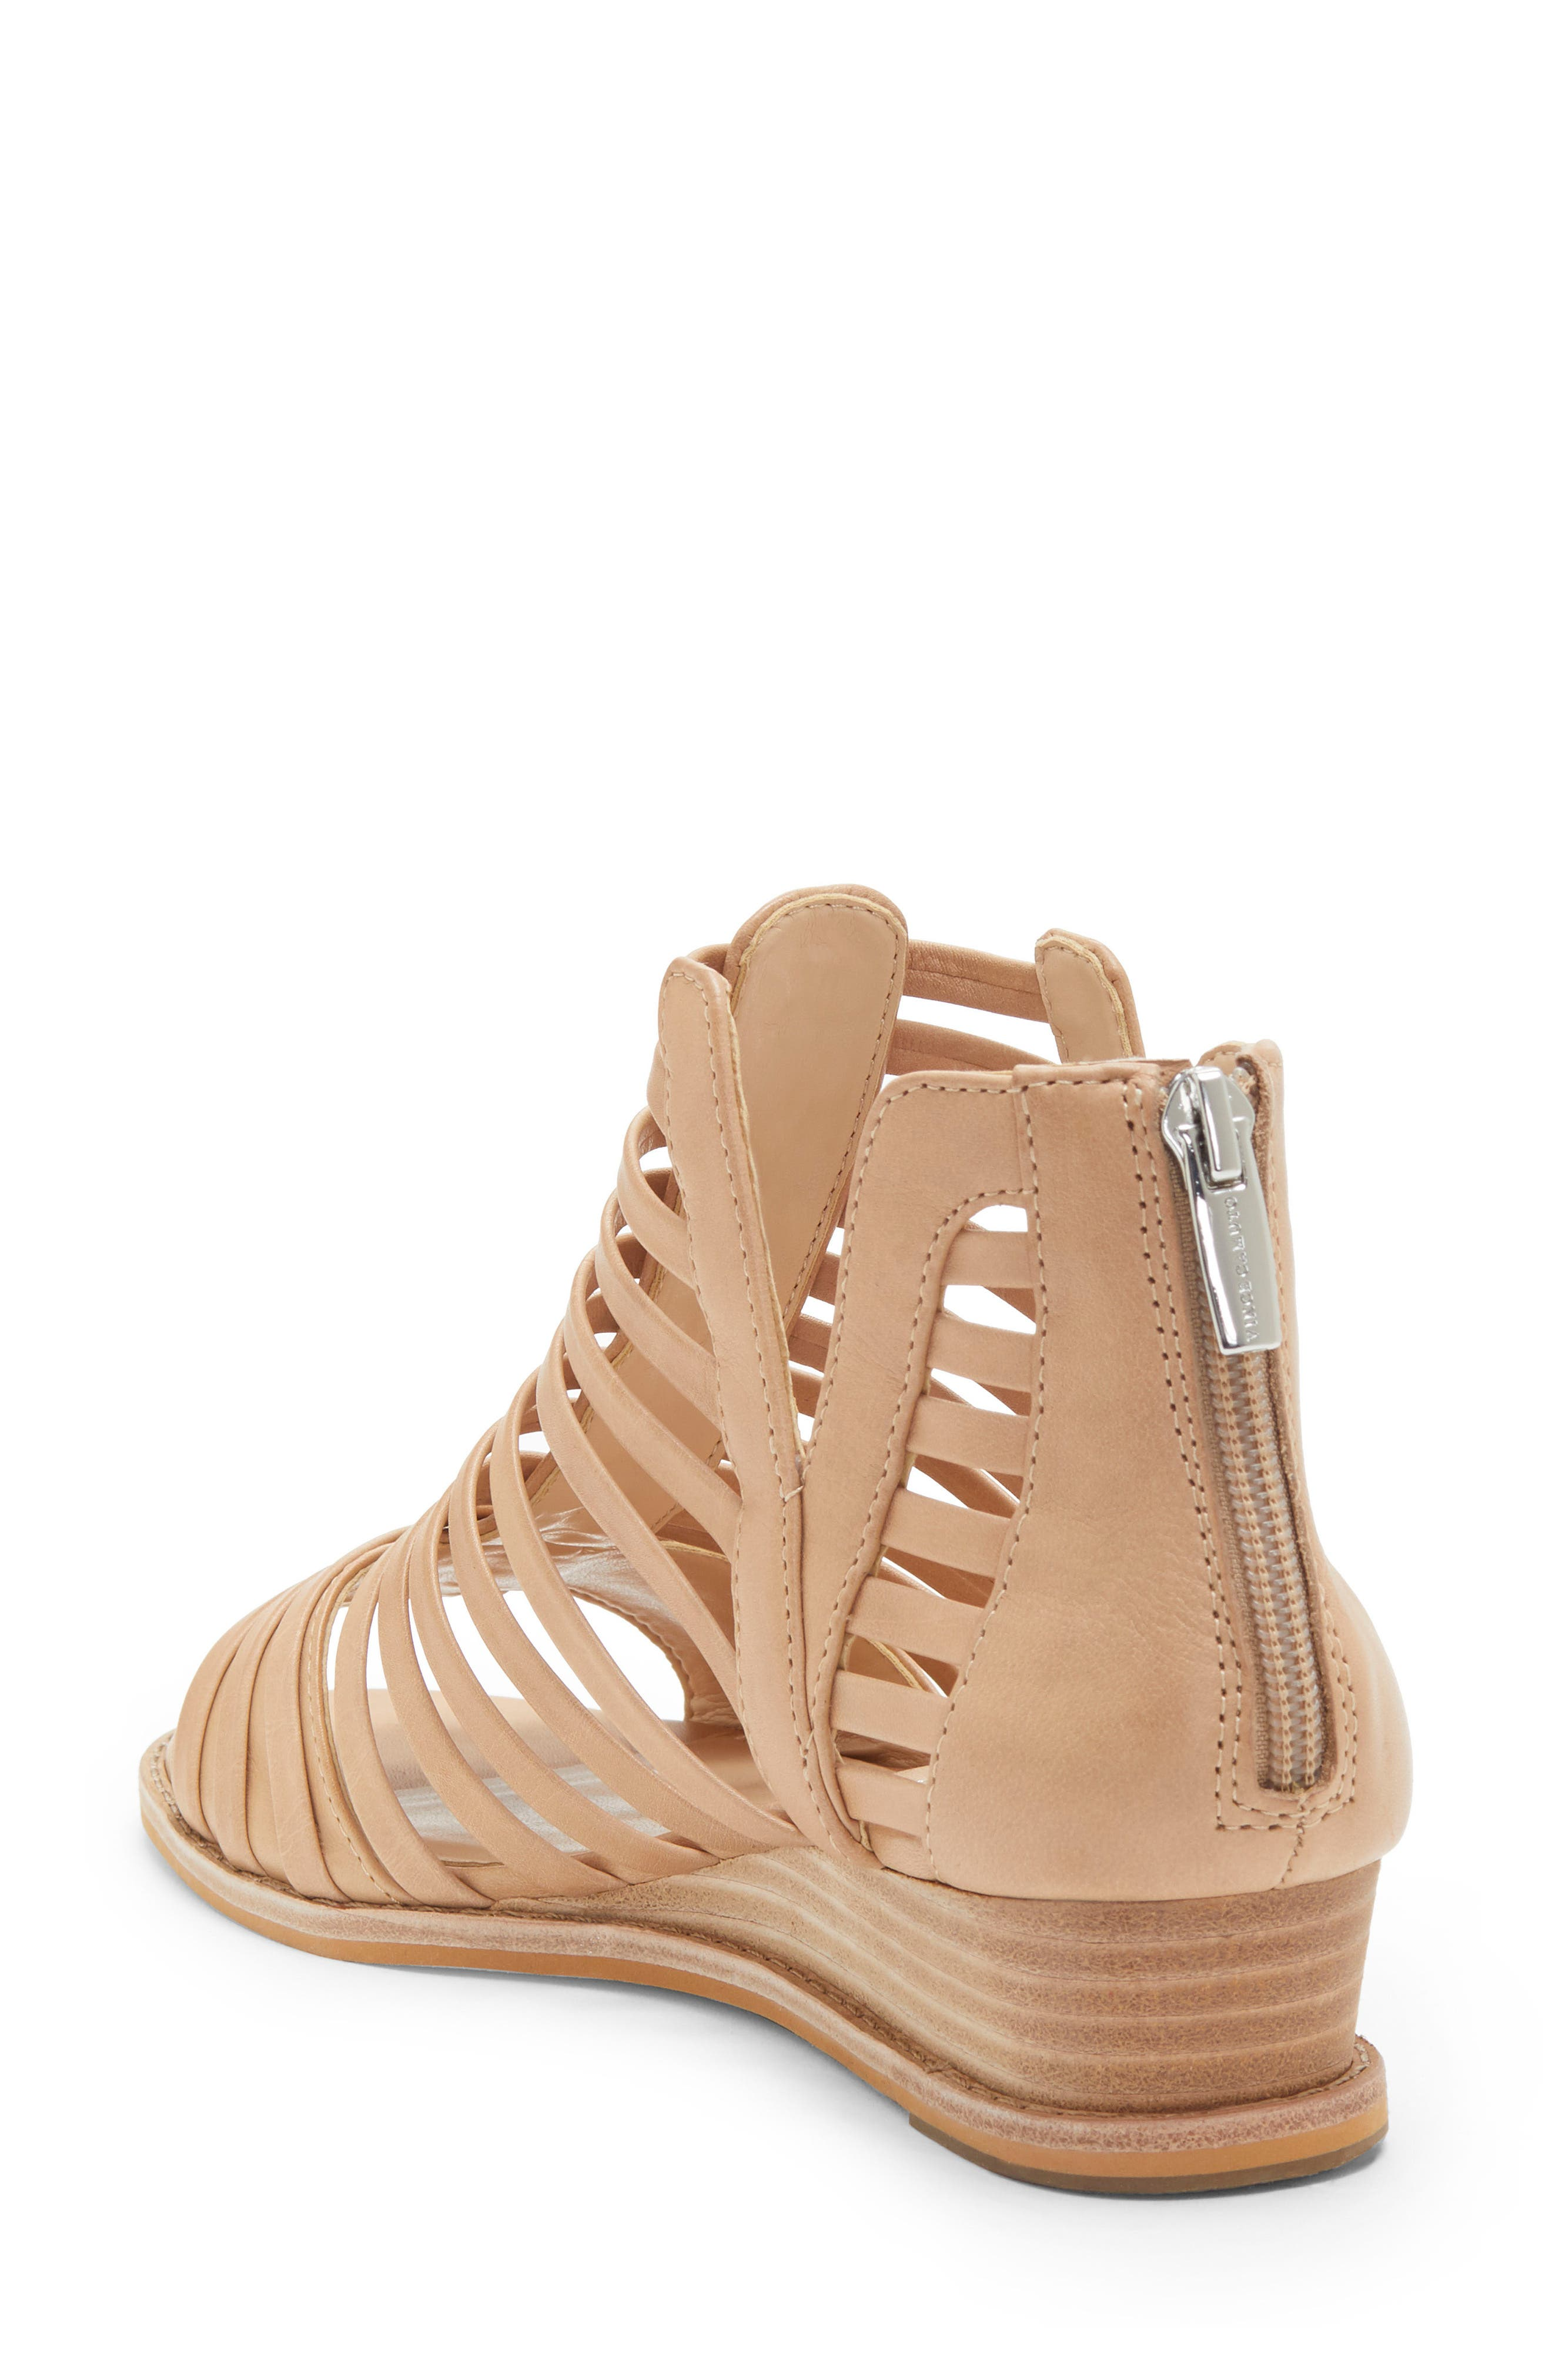 VINCE CAMUTO, Revey Wedge Sandal, Alternate thumbnail 2, color, NATURAL LEATHER